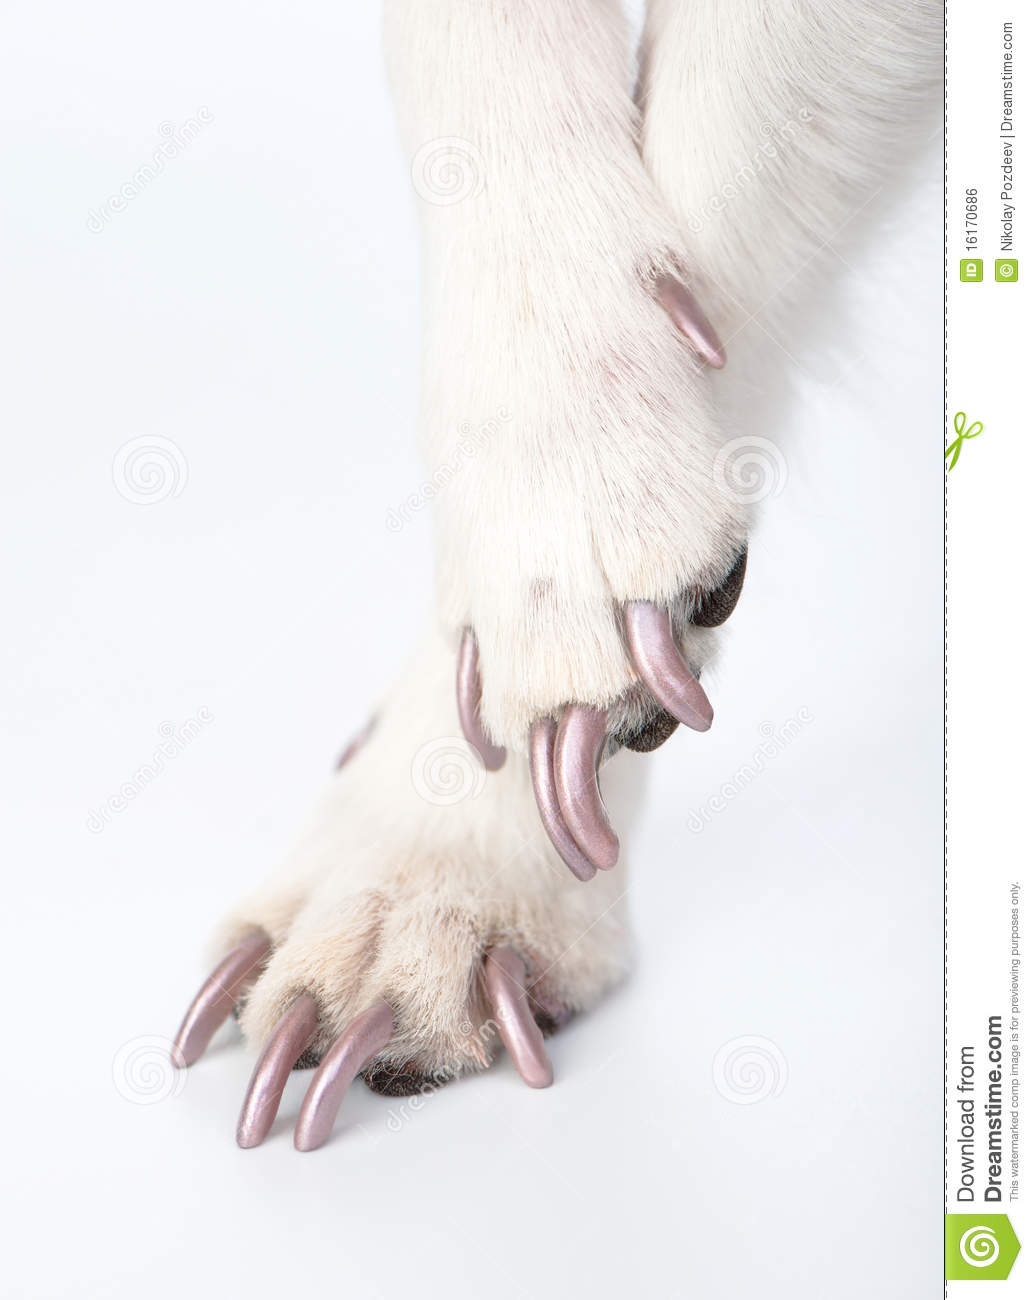 Well Groomed Dog Paws With Manicure Stock Photo Image Of Claws